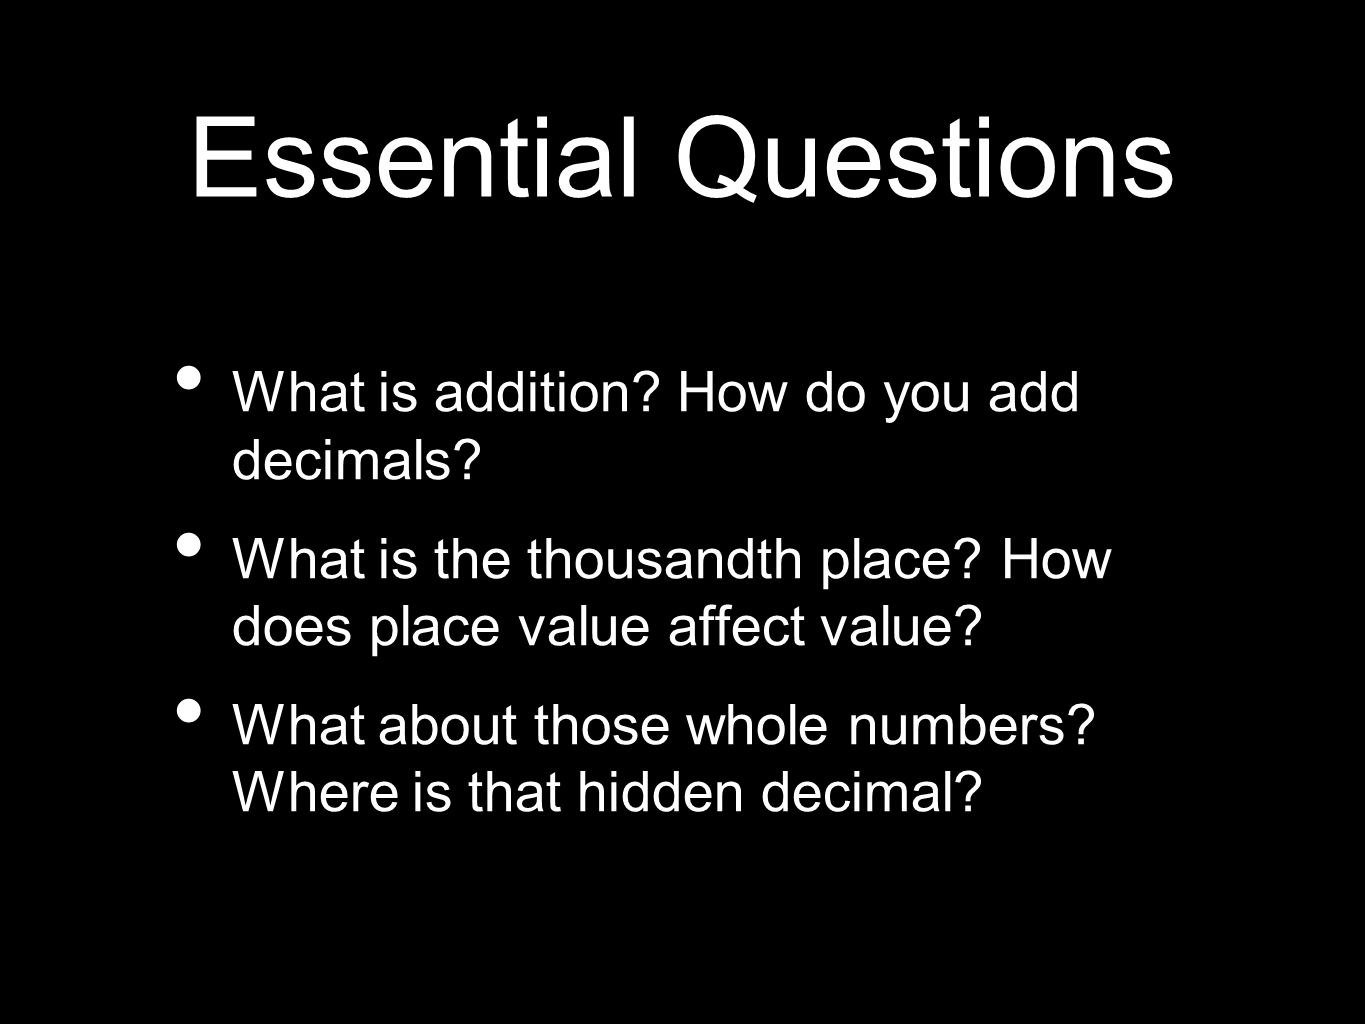 Essential Questions What is addition? How do you add decimals? What is the thousandth place? How does place value affect value? What about those whole